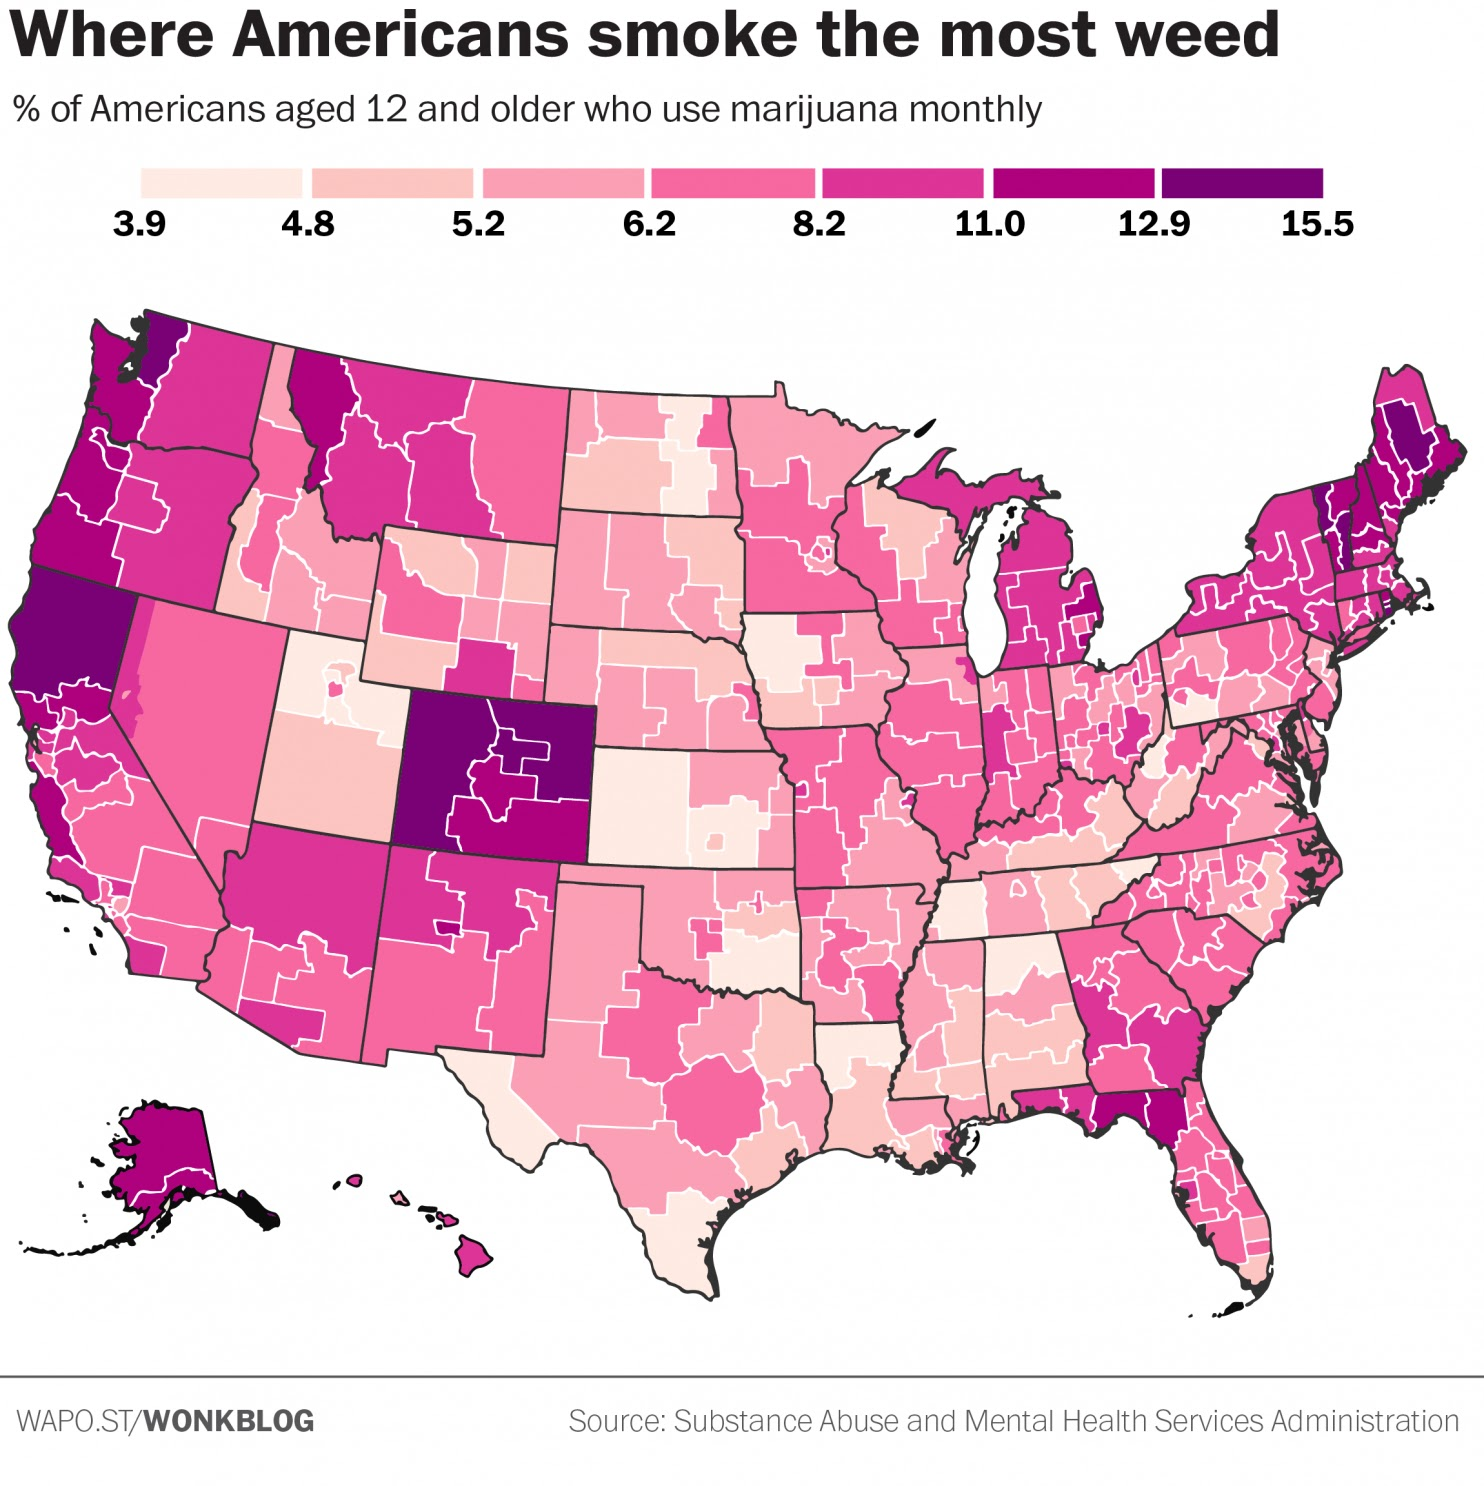 the rural blog: map shows marijuana use by state; highest rates in